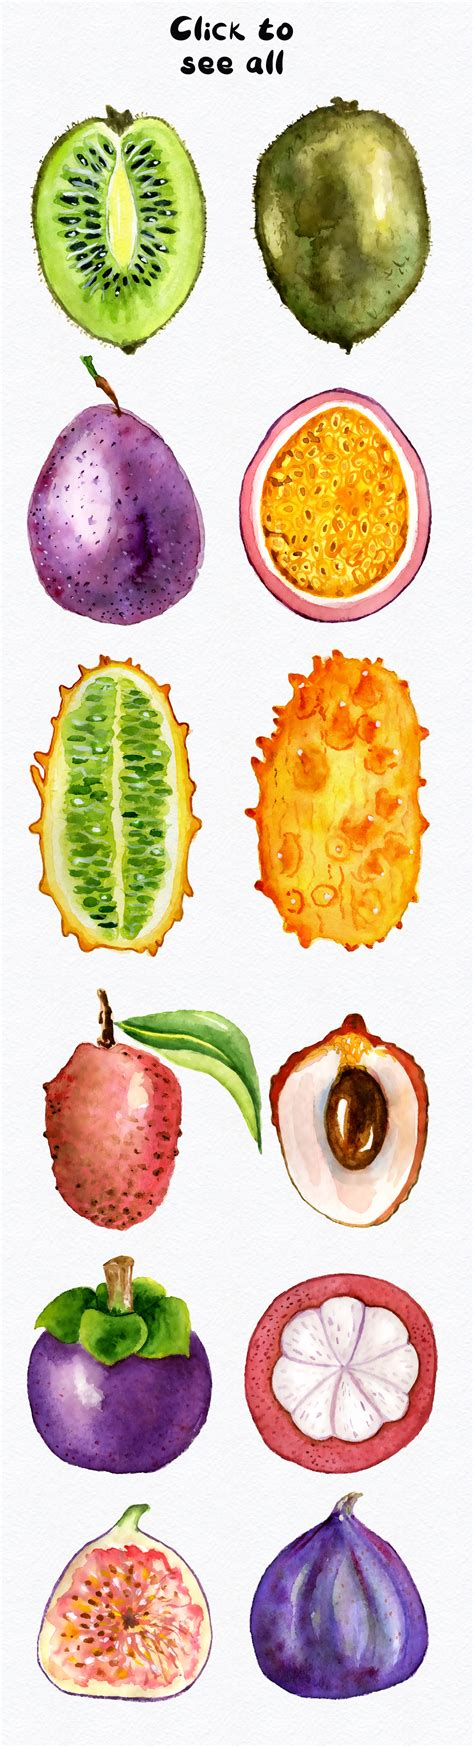 watercolor fruits clipart by digitalartsi thehungryjpegcom watercolor tropical fruits clipart by evgeniiasart